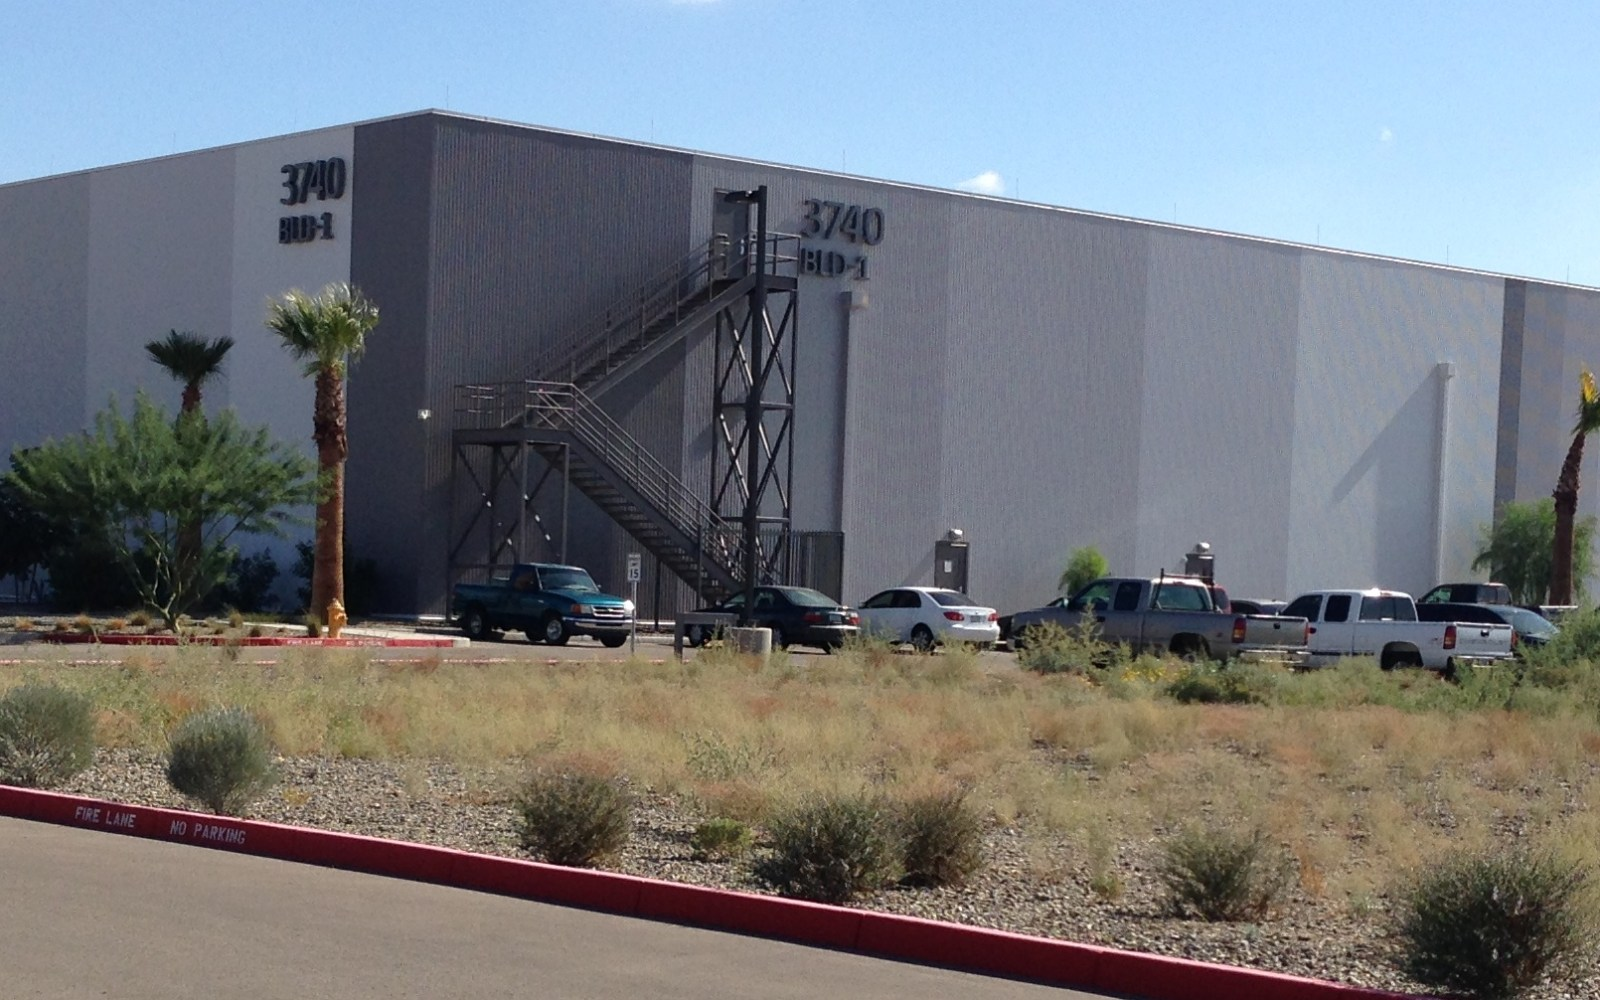 Apple will continue evaluating GTAT's sapphire production progress, could repurpose Mesa facility